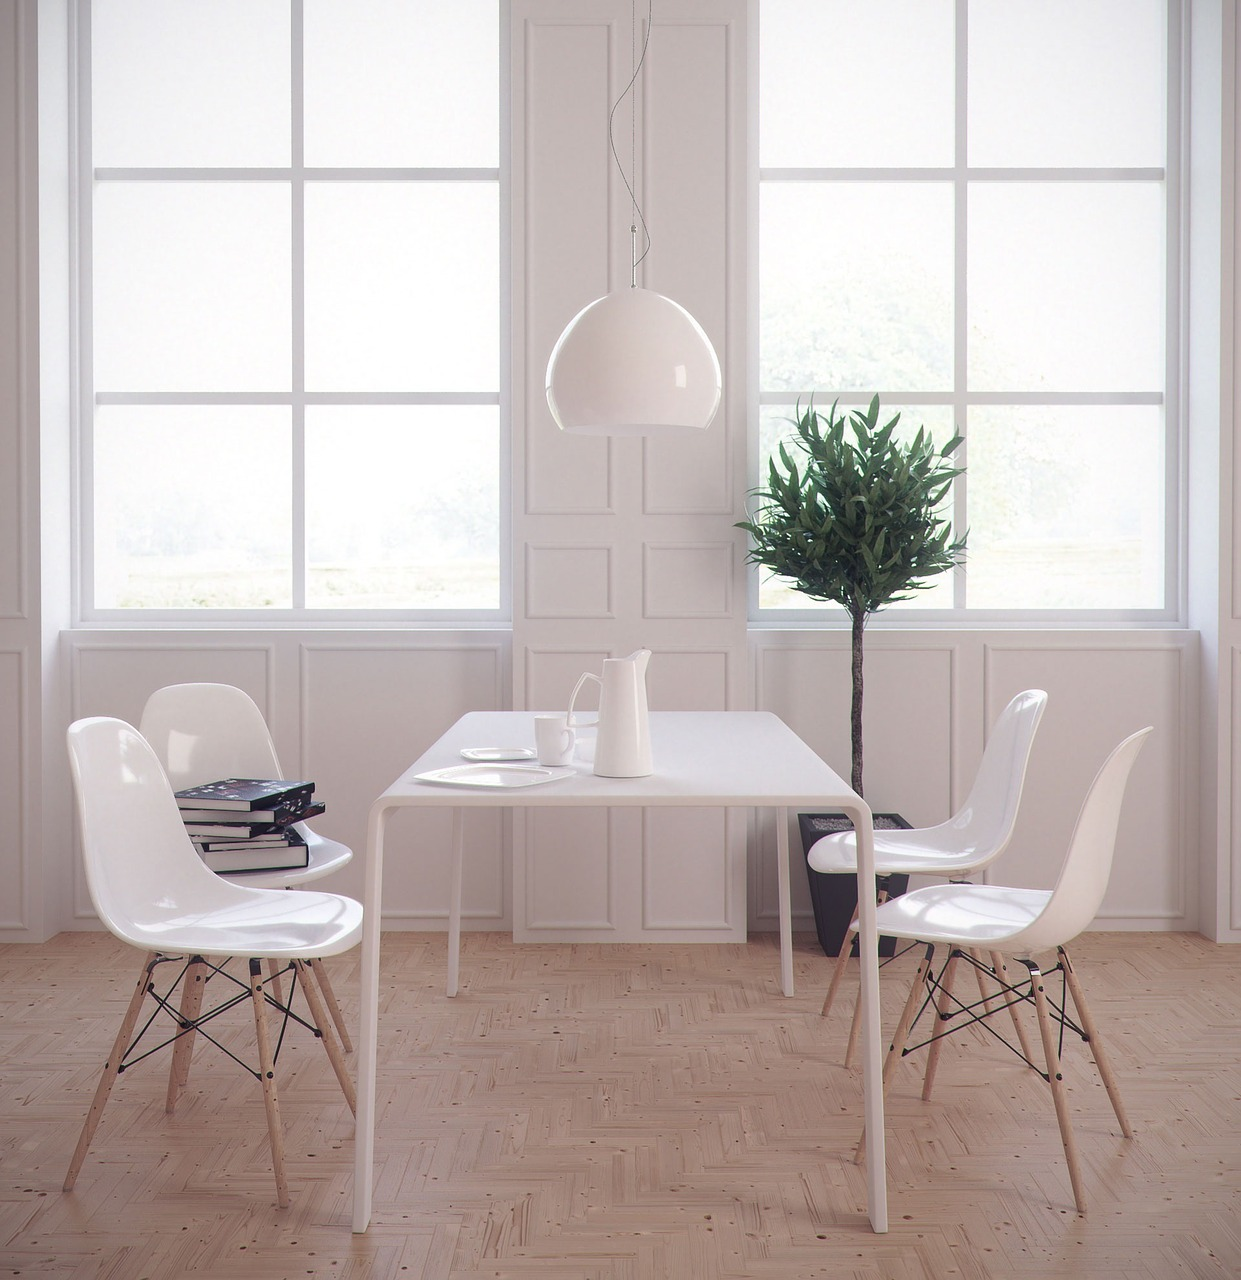 Dining Room Feng Shui 5 Feng Shui Rules Never To Break